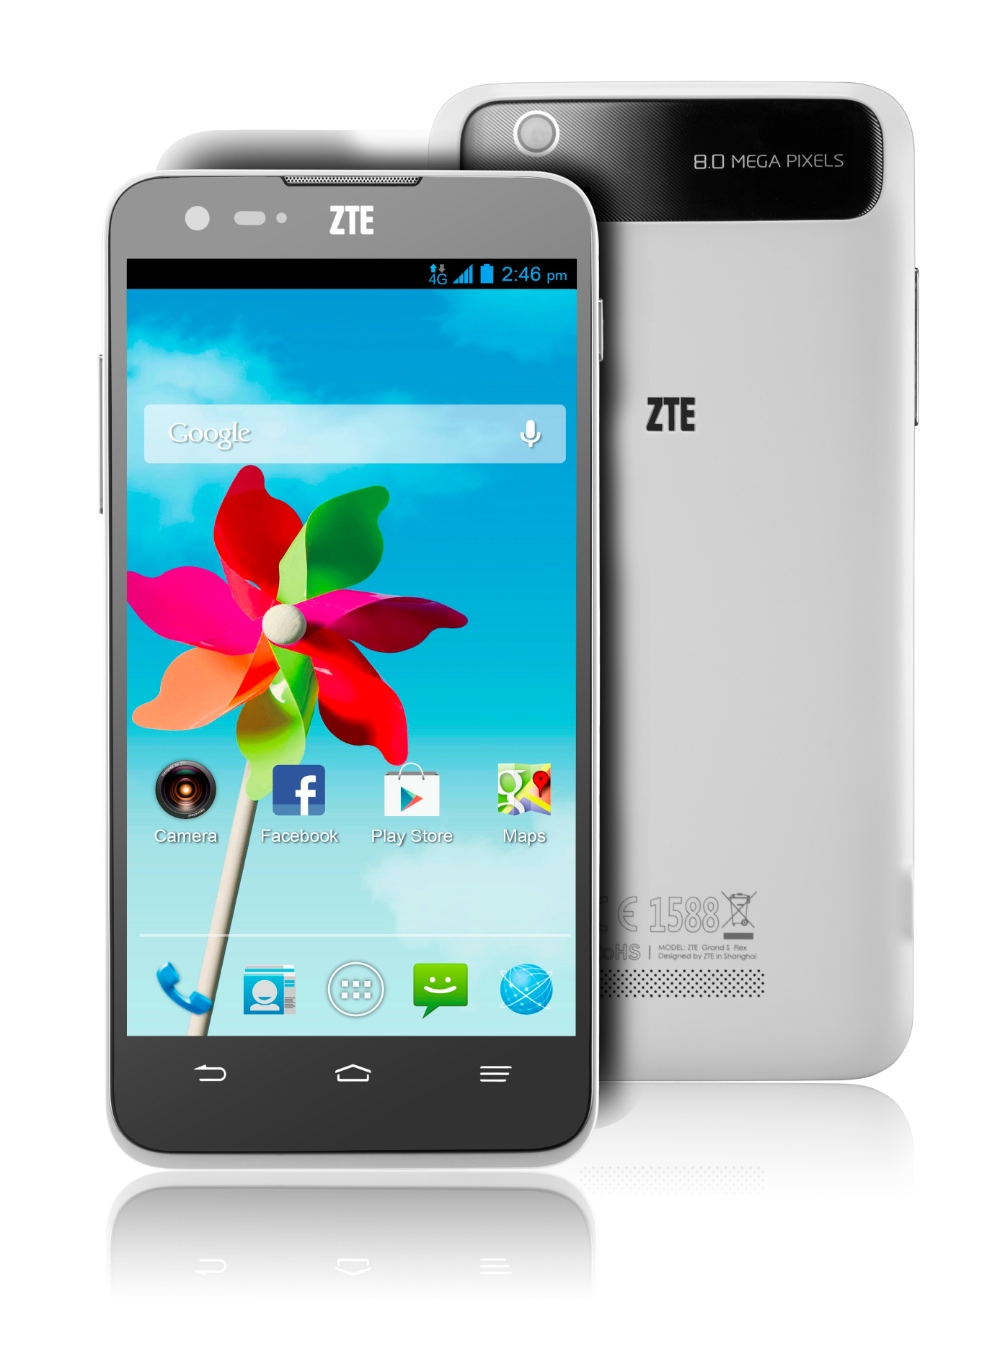 zte grand s flex firmware countless app available